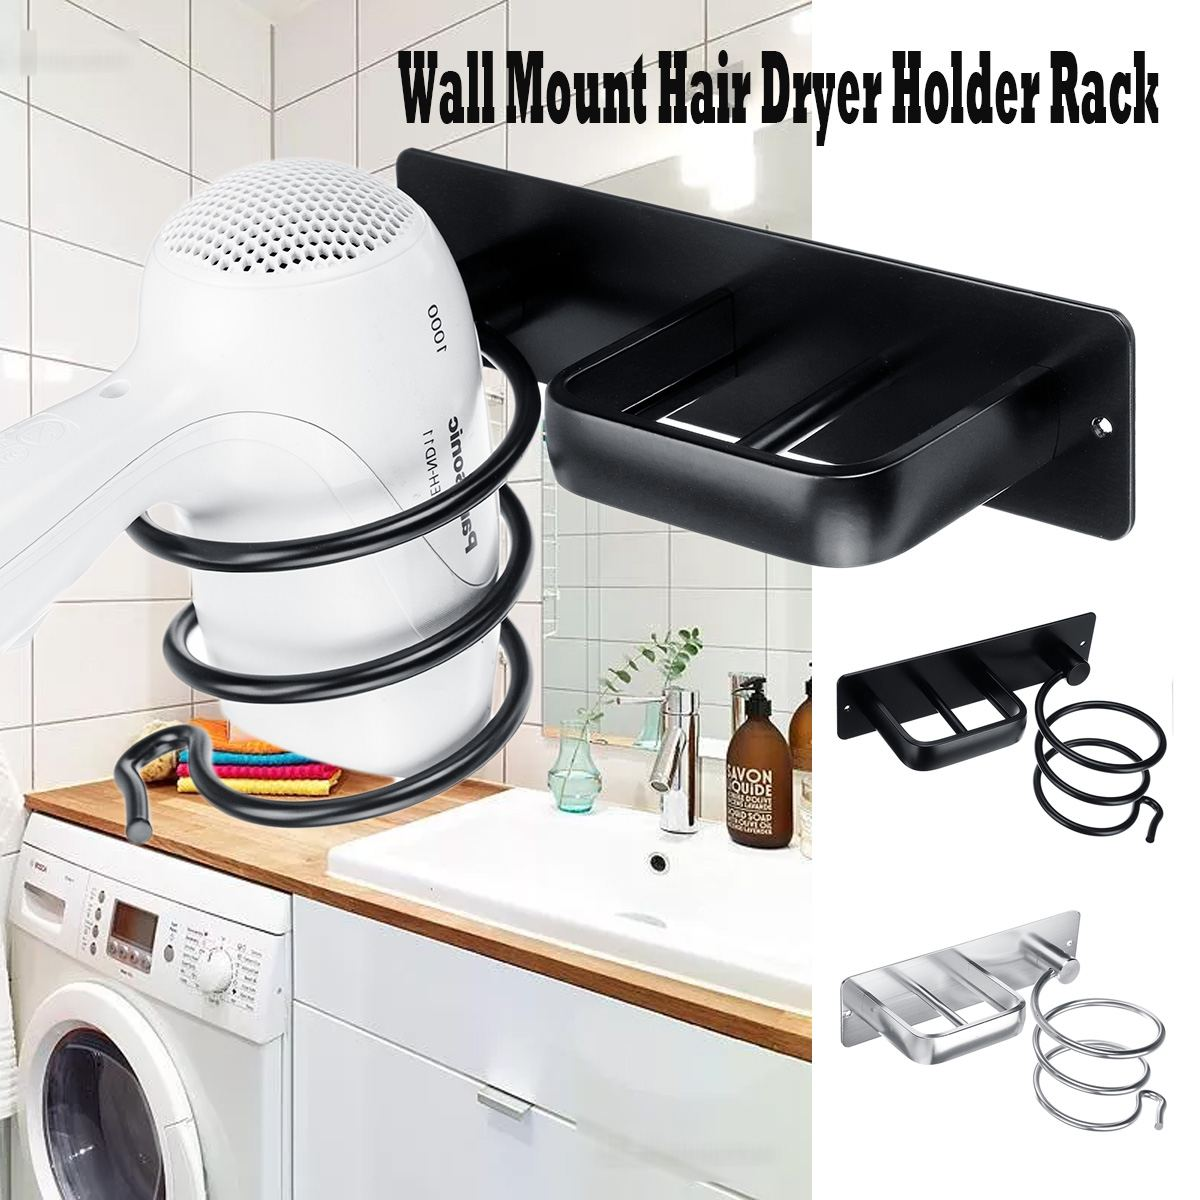 Aluminum Wall Mounted Hair Dryer Rack Organizer Hairdryer Straightener Holder Set Bathroom Shelf For Washroom SuppliesAluminum Wall Mounted Hair Dryer Rack Organizer Hairdryer Straightener Holder Set Bathroom Shelf For Washroom Supplies